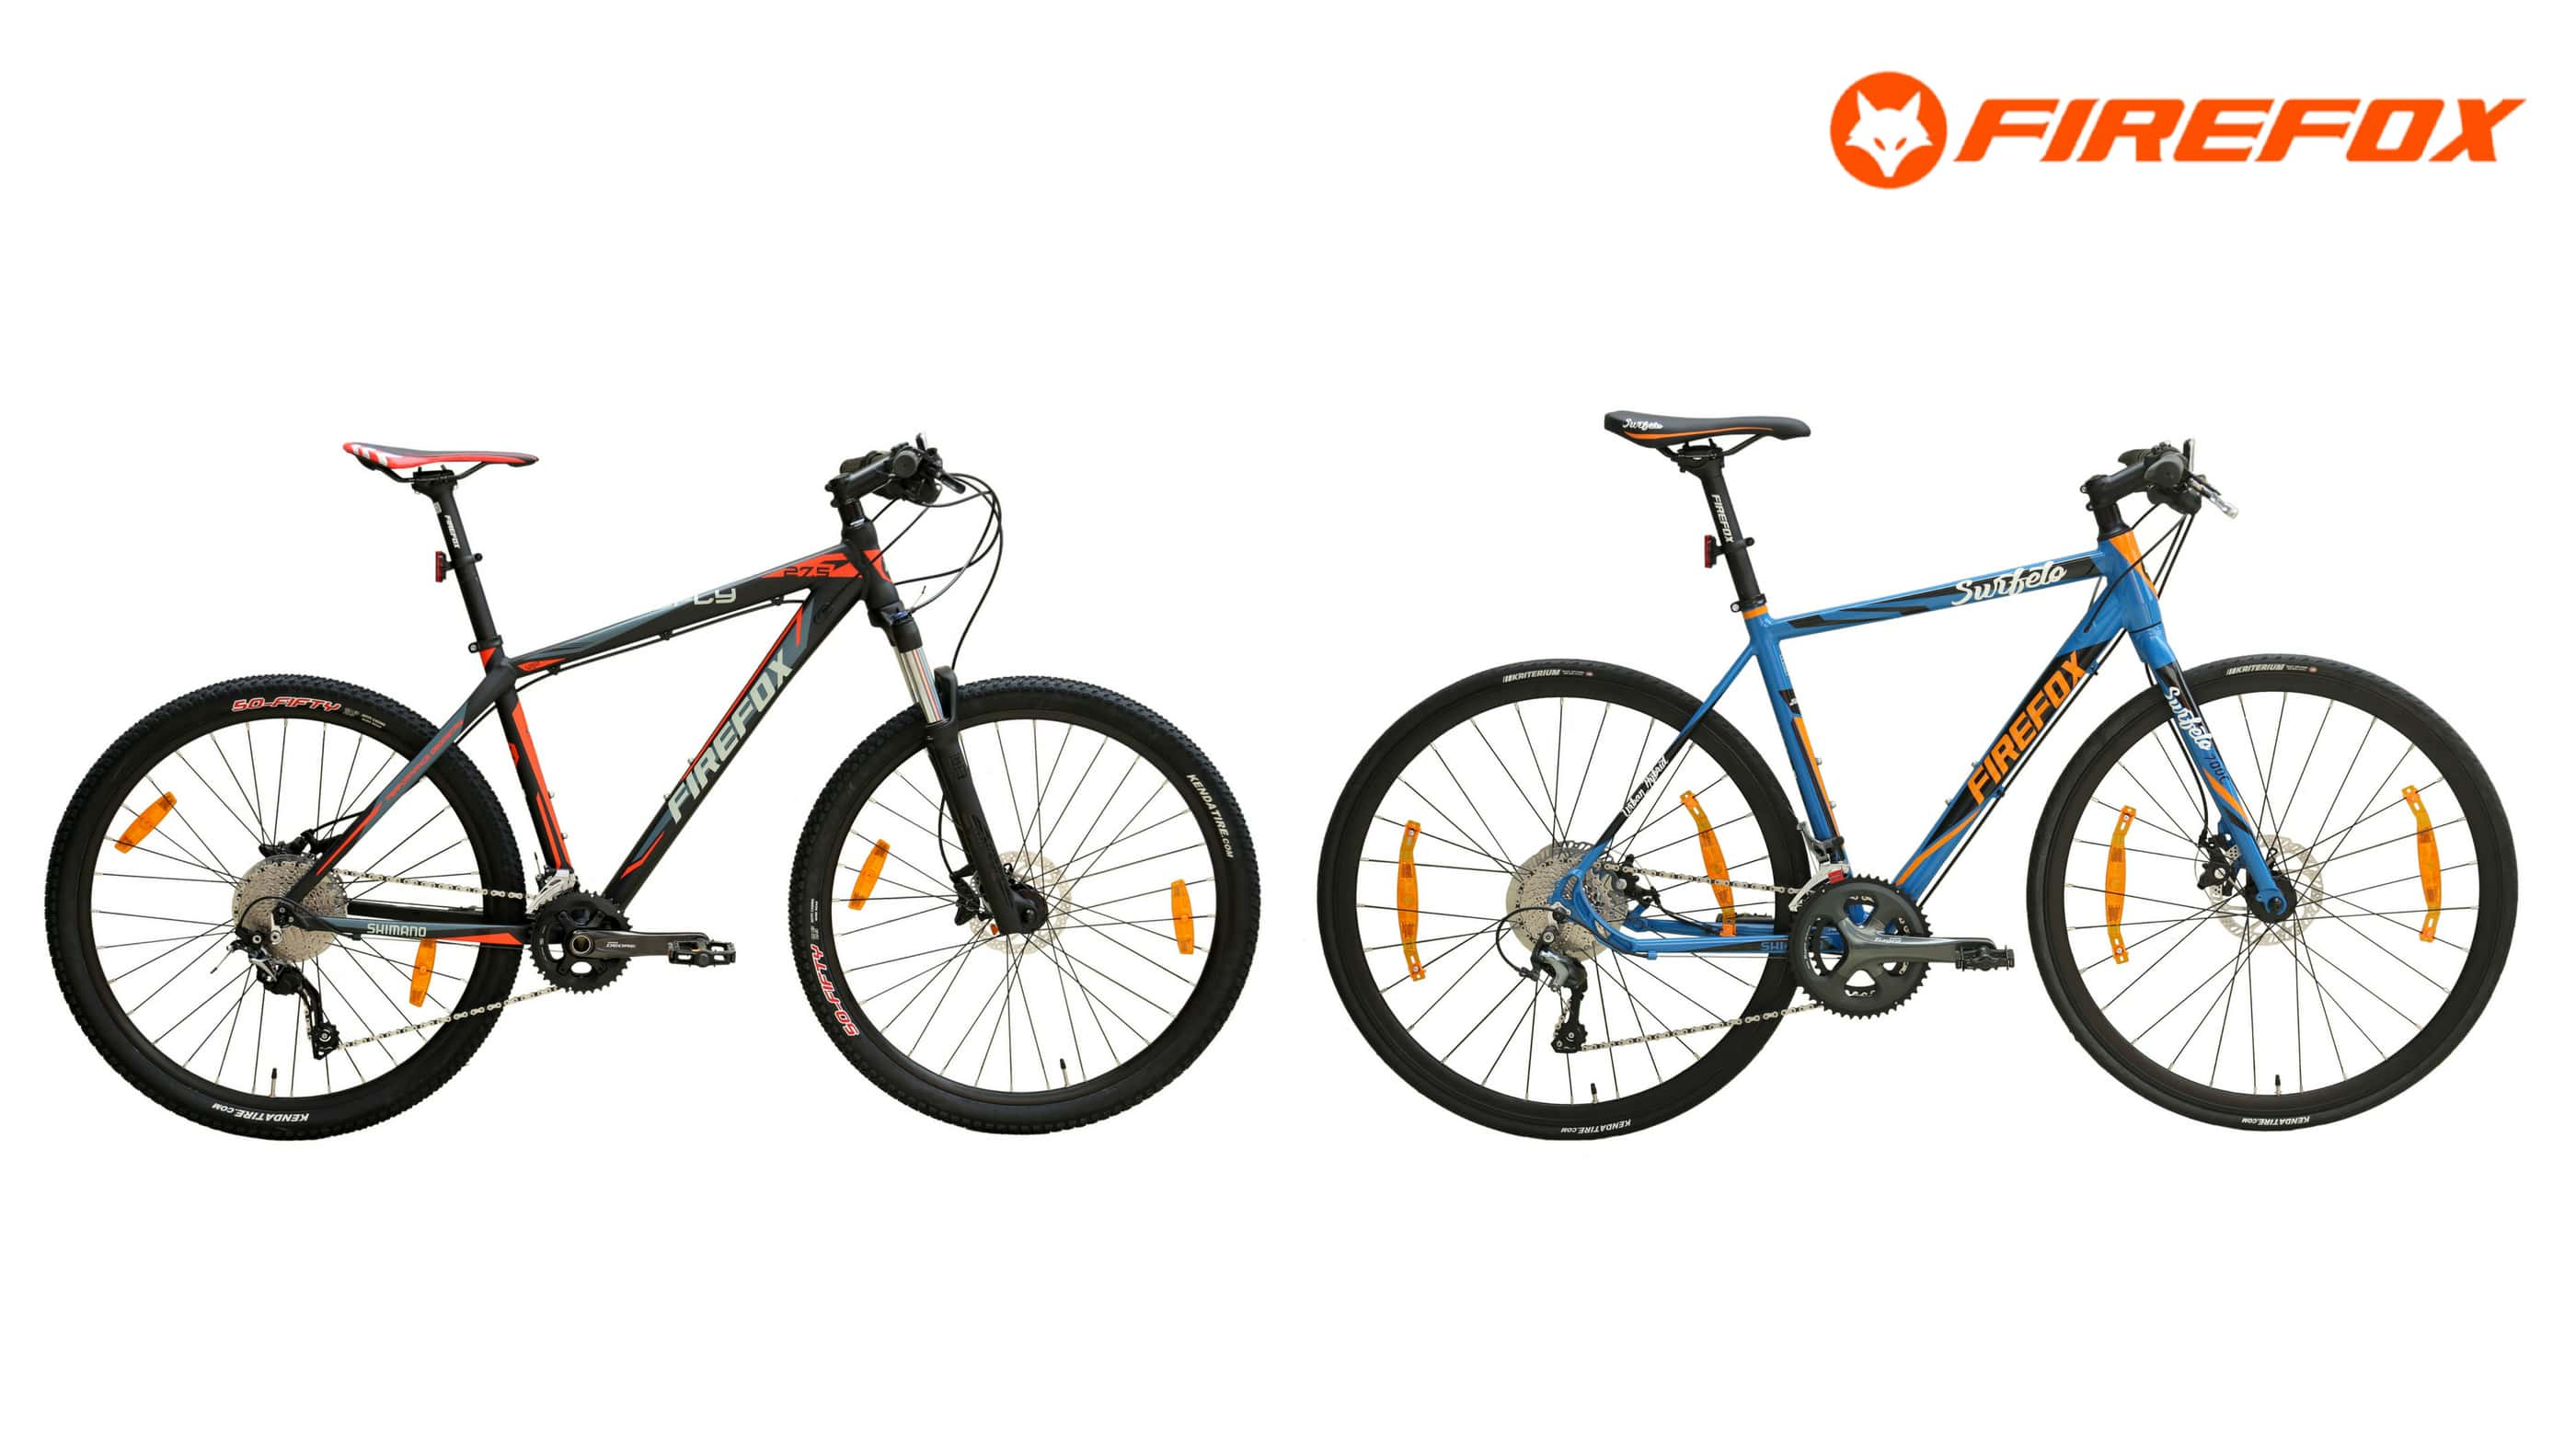 New Performance Bicycles from Firefox